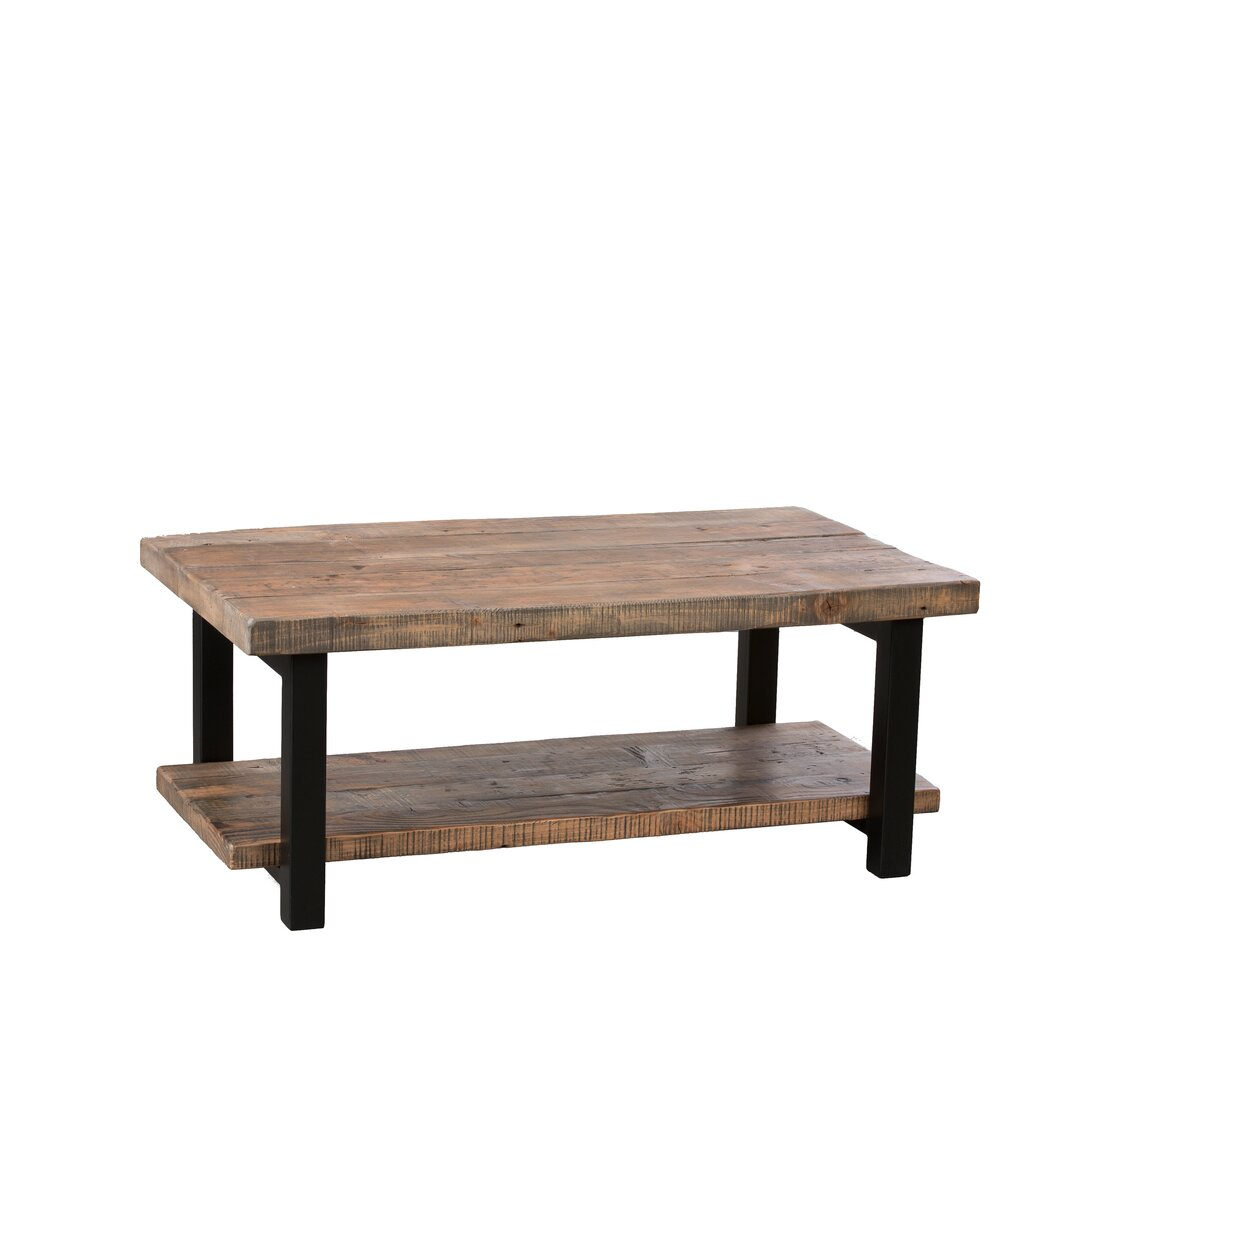 Marvelous photograph of  Room Furniture Rectangle Coffee Tables Loon Peak SKU: LOON4776 with #7E5F4D color and 1257x1257 pixels